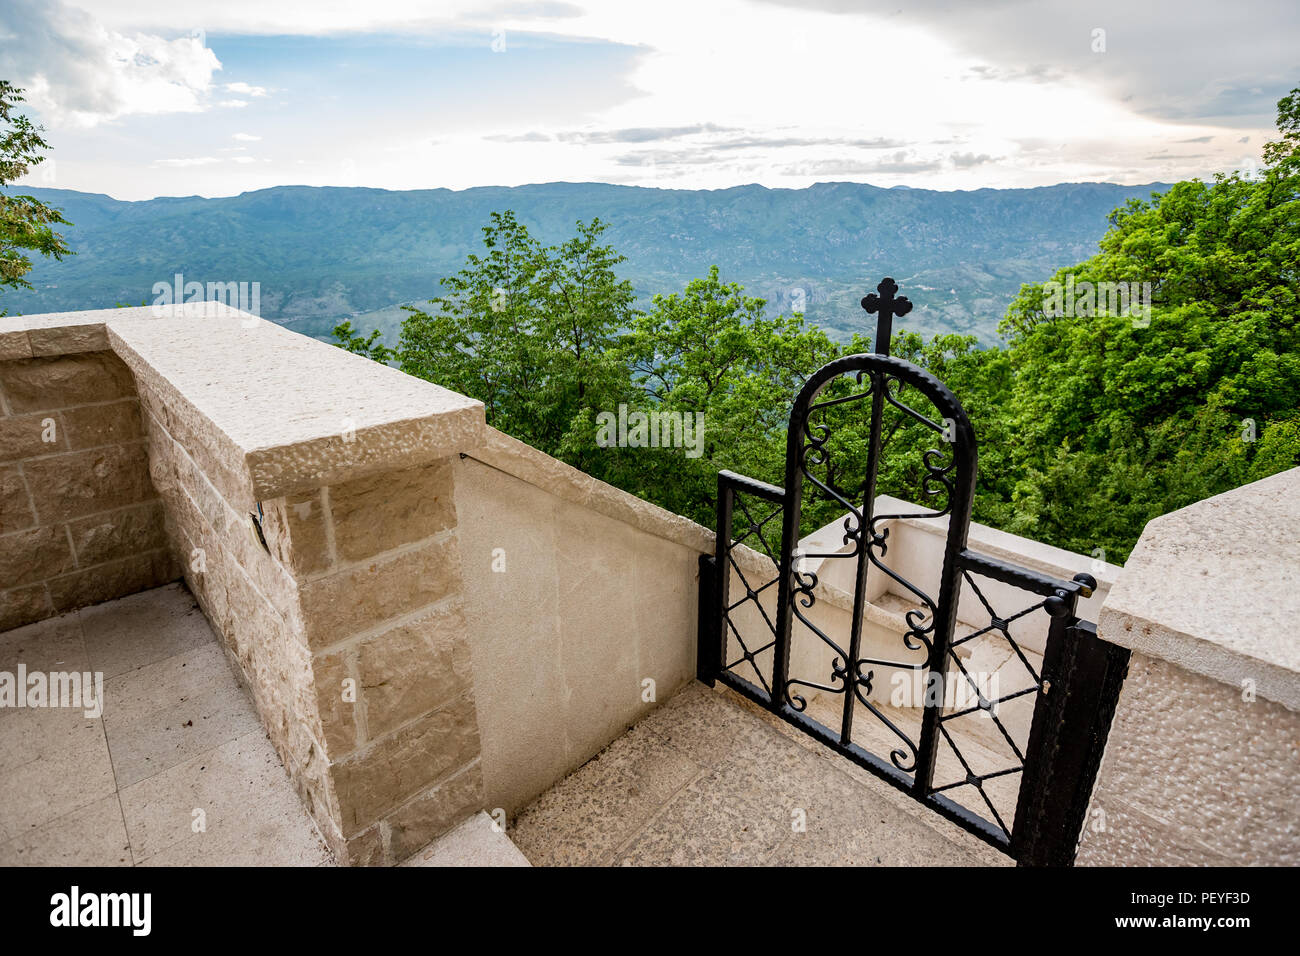 Black painted metallic arc door with decorations and cross on top and beautiful scenery view towards mountains in Montenegro - Stock Image